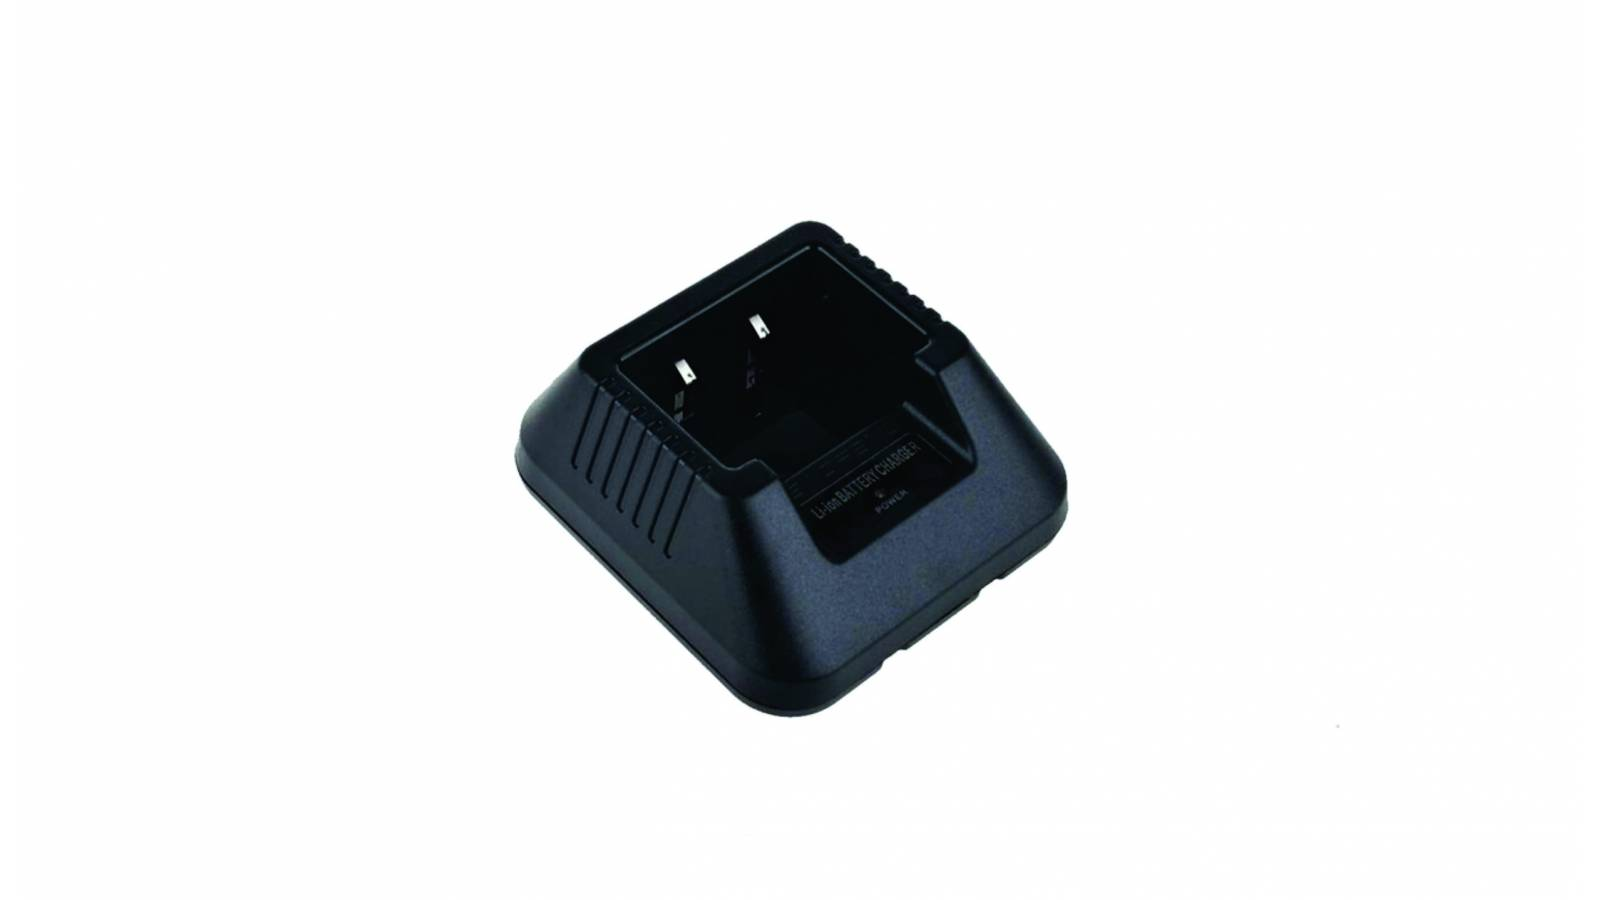 BASE CARGADOR PARA WALKIE TALKIE UV-5RA